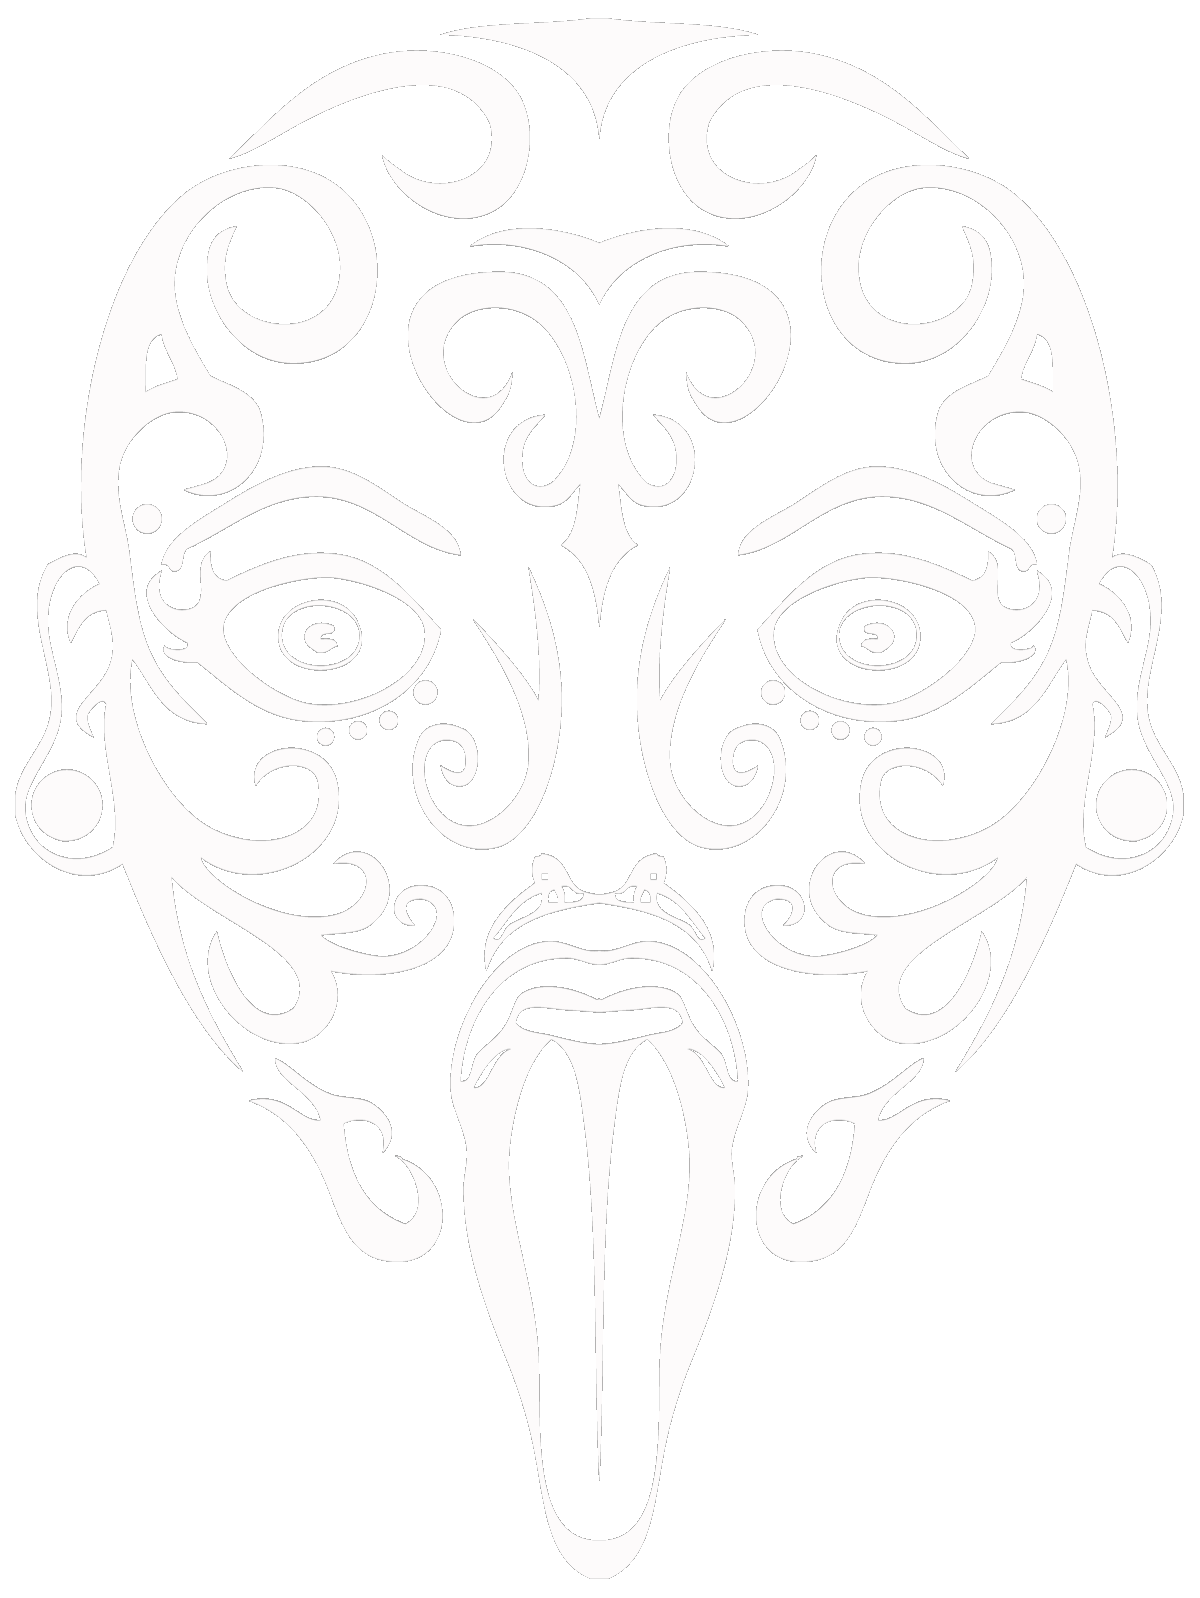 Piercing needle png. Home laughing buddha body